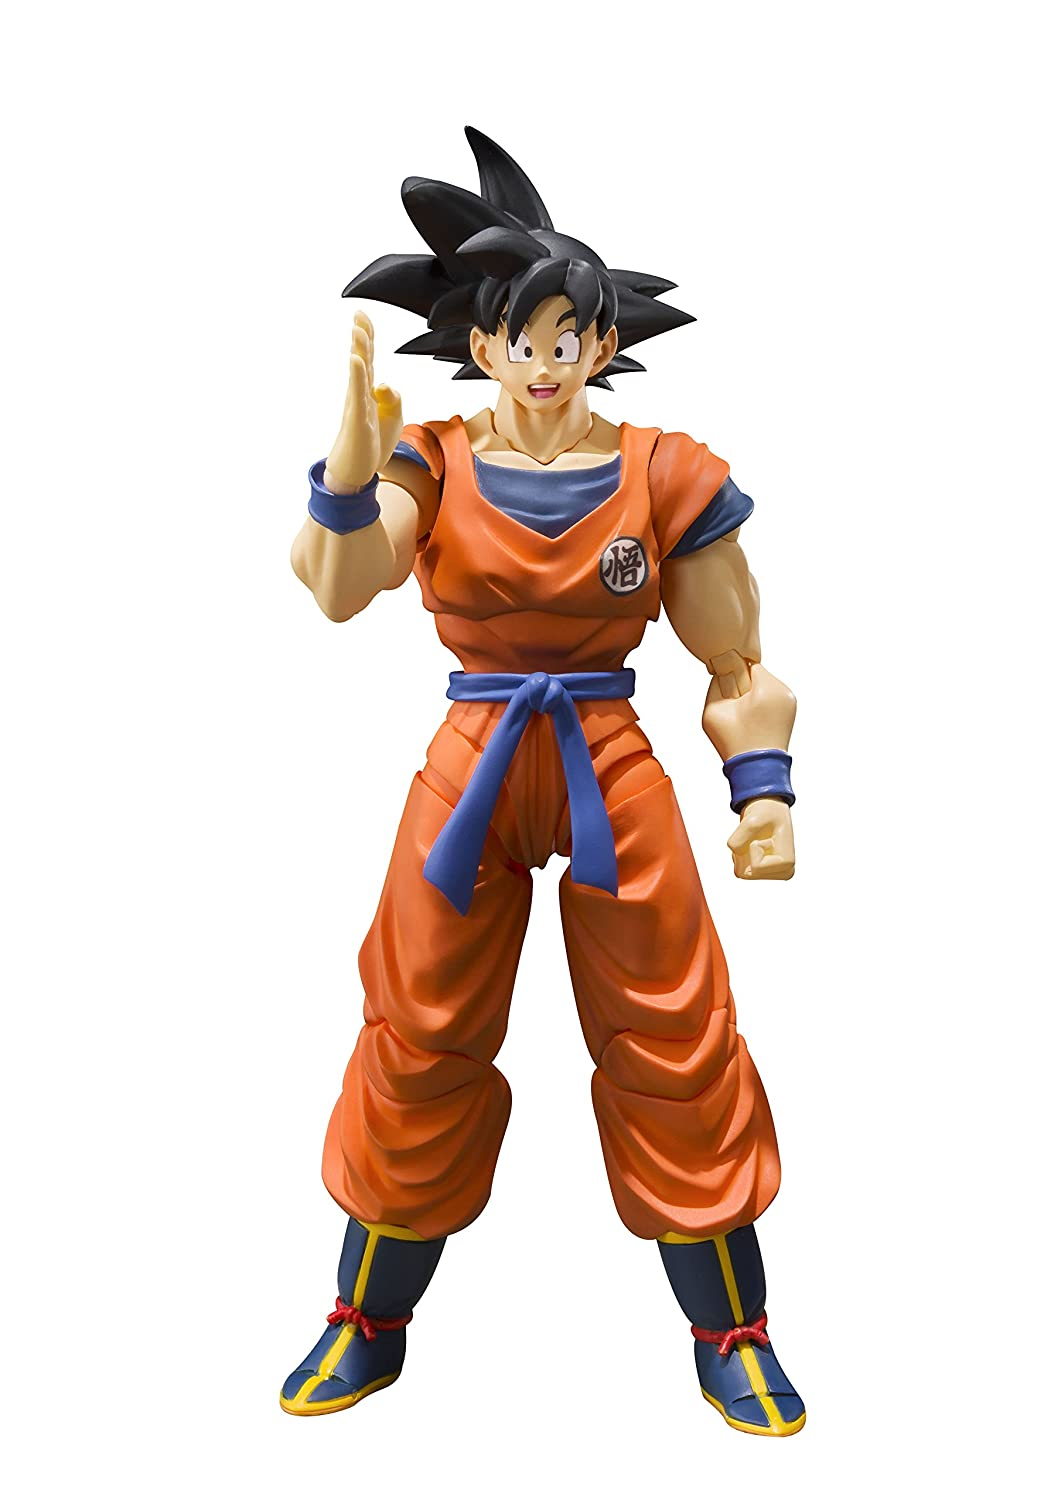 Bandai Tamashii Nations S.H. Figuarts Son Goku (A Saiyan Raised on Earth) Dragon Ball Super Action Figure BDIDB208778